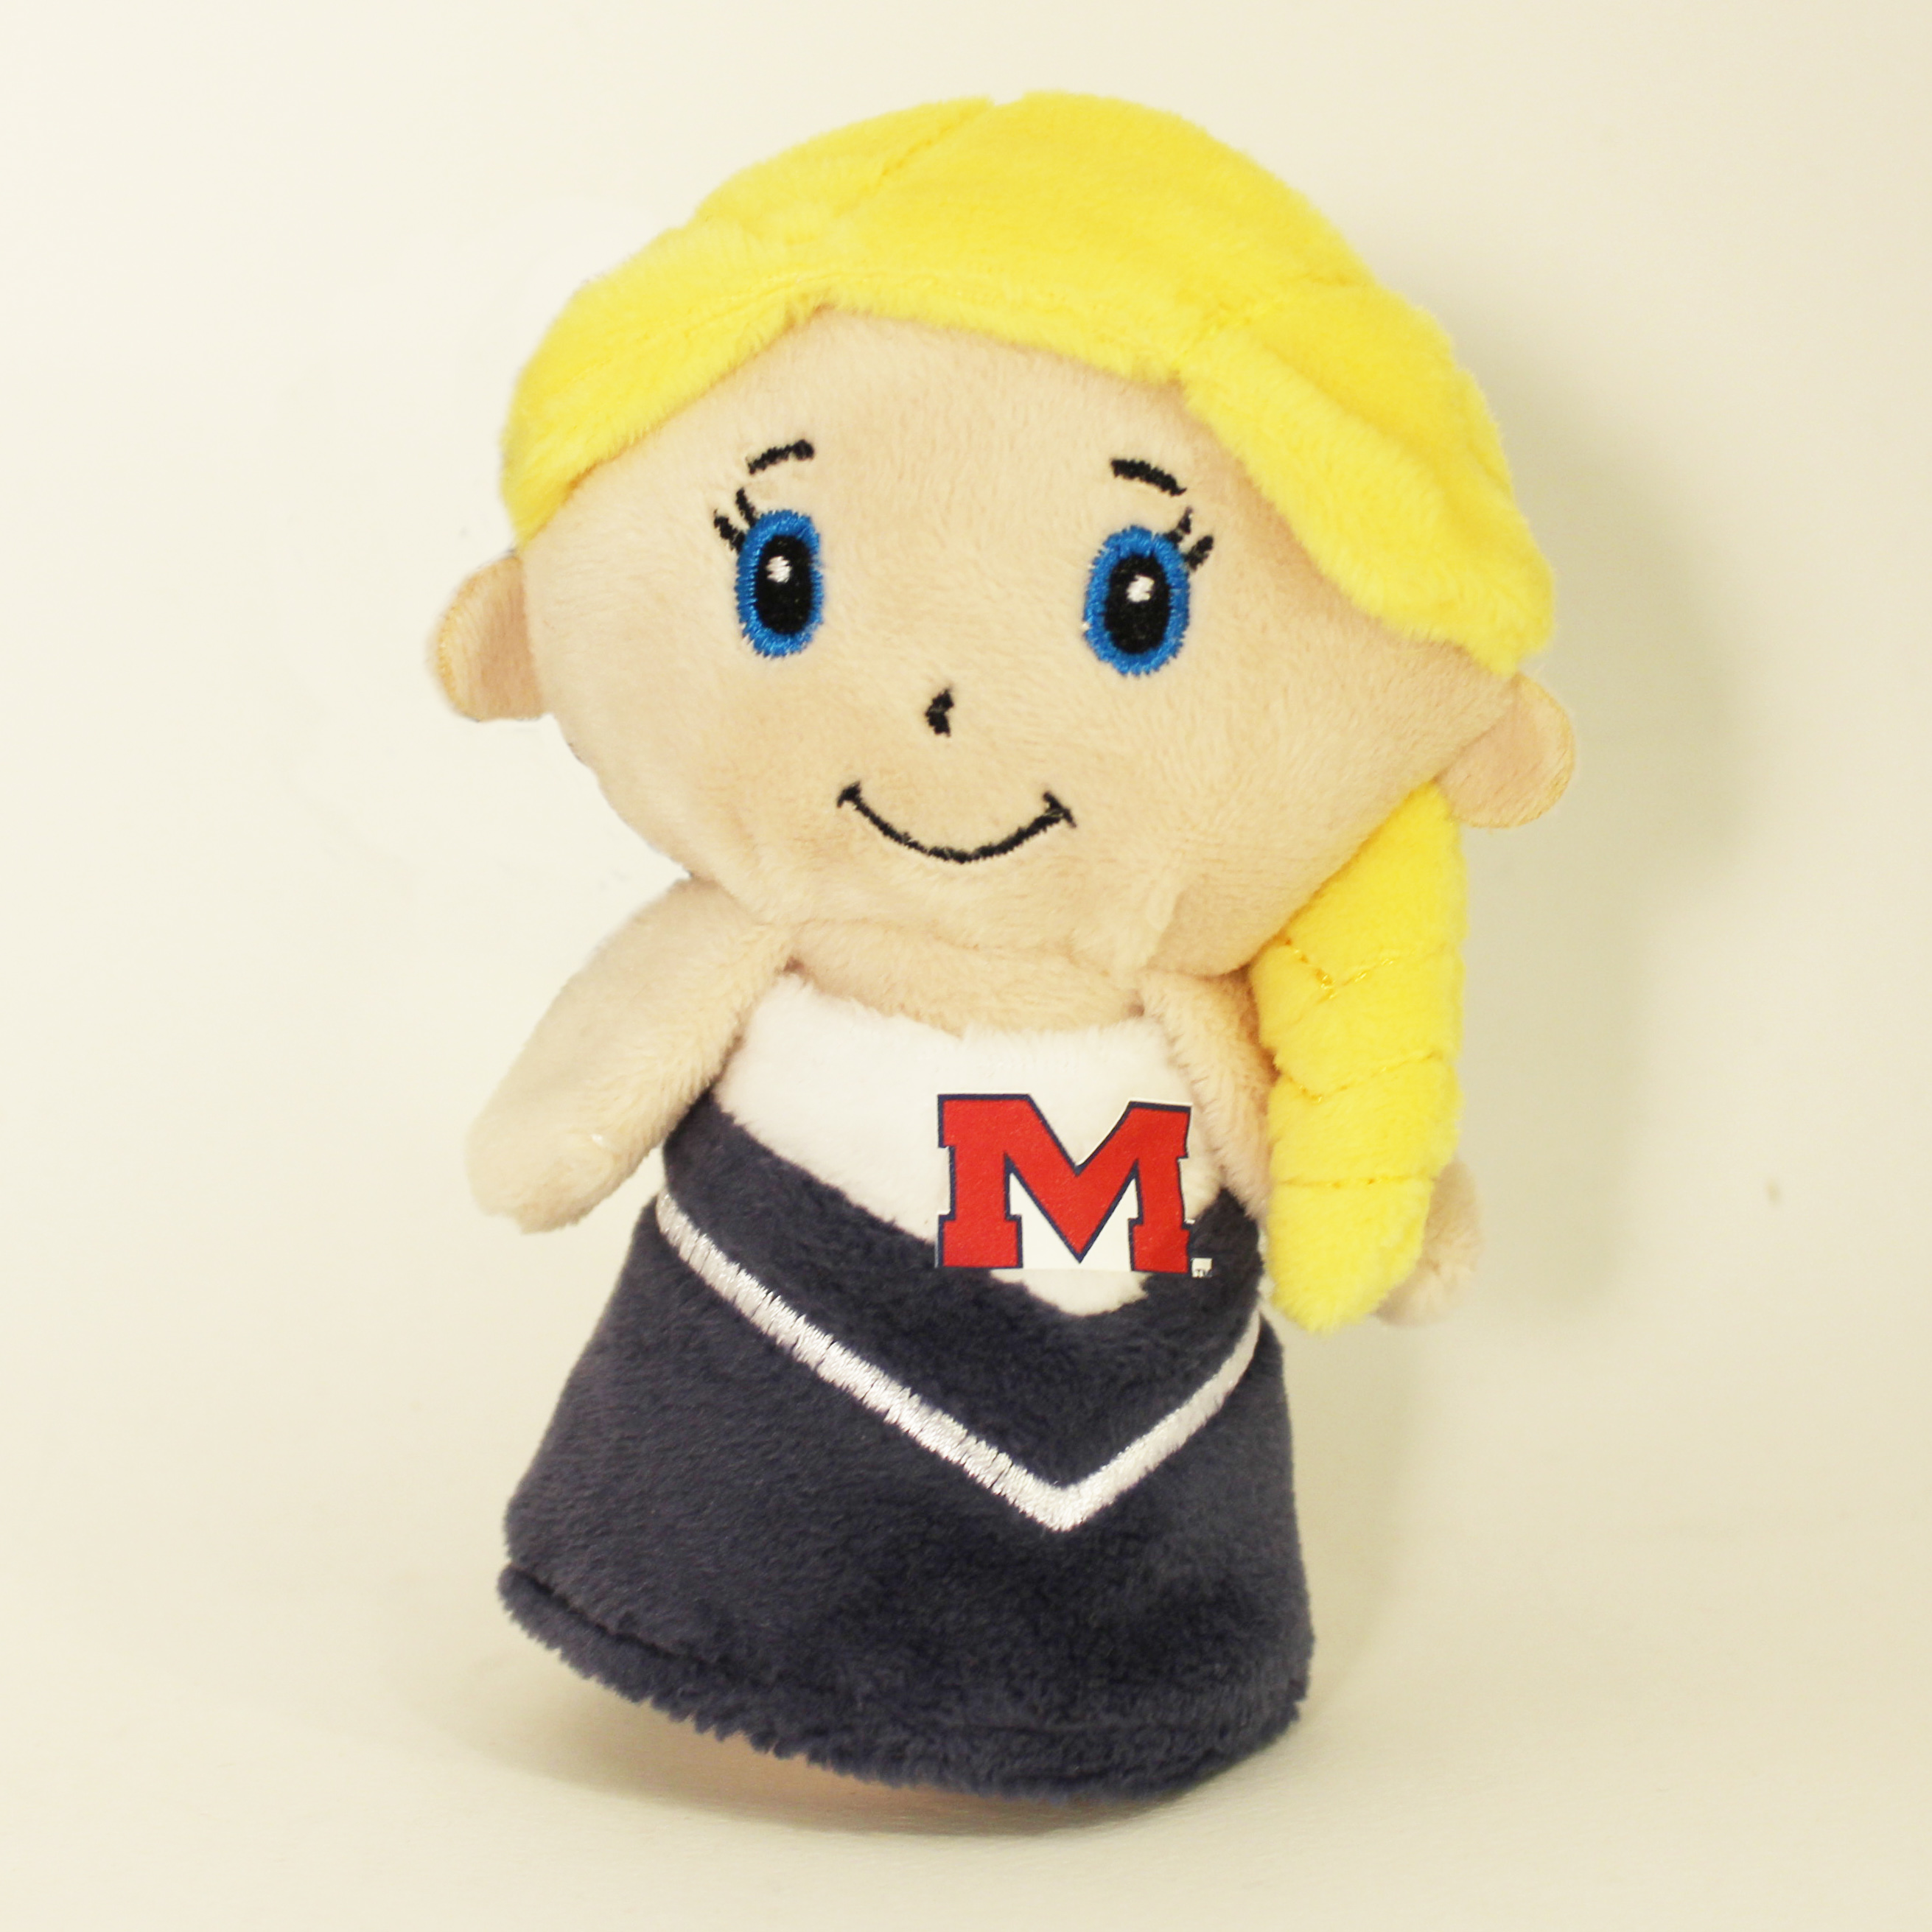 Cheerleader Tiny Tot Mini Plush